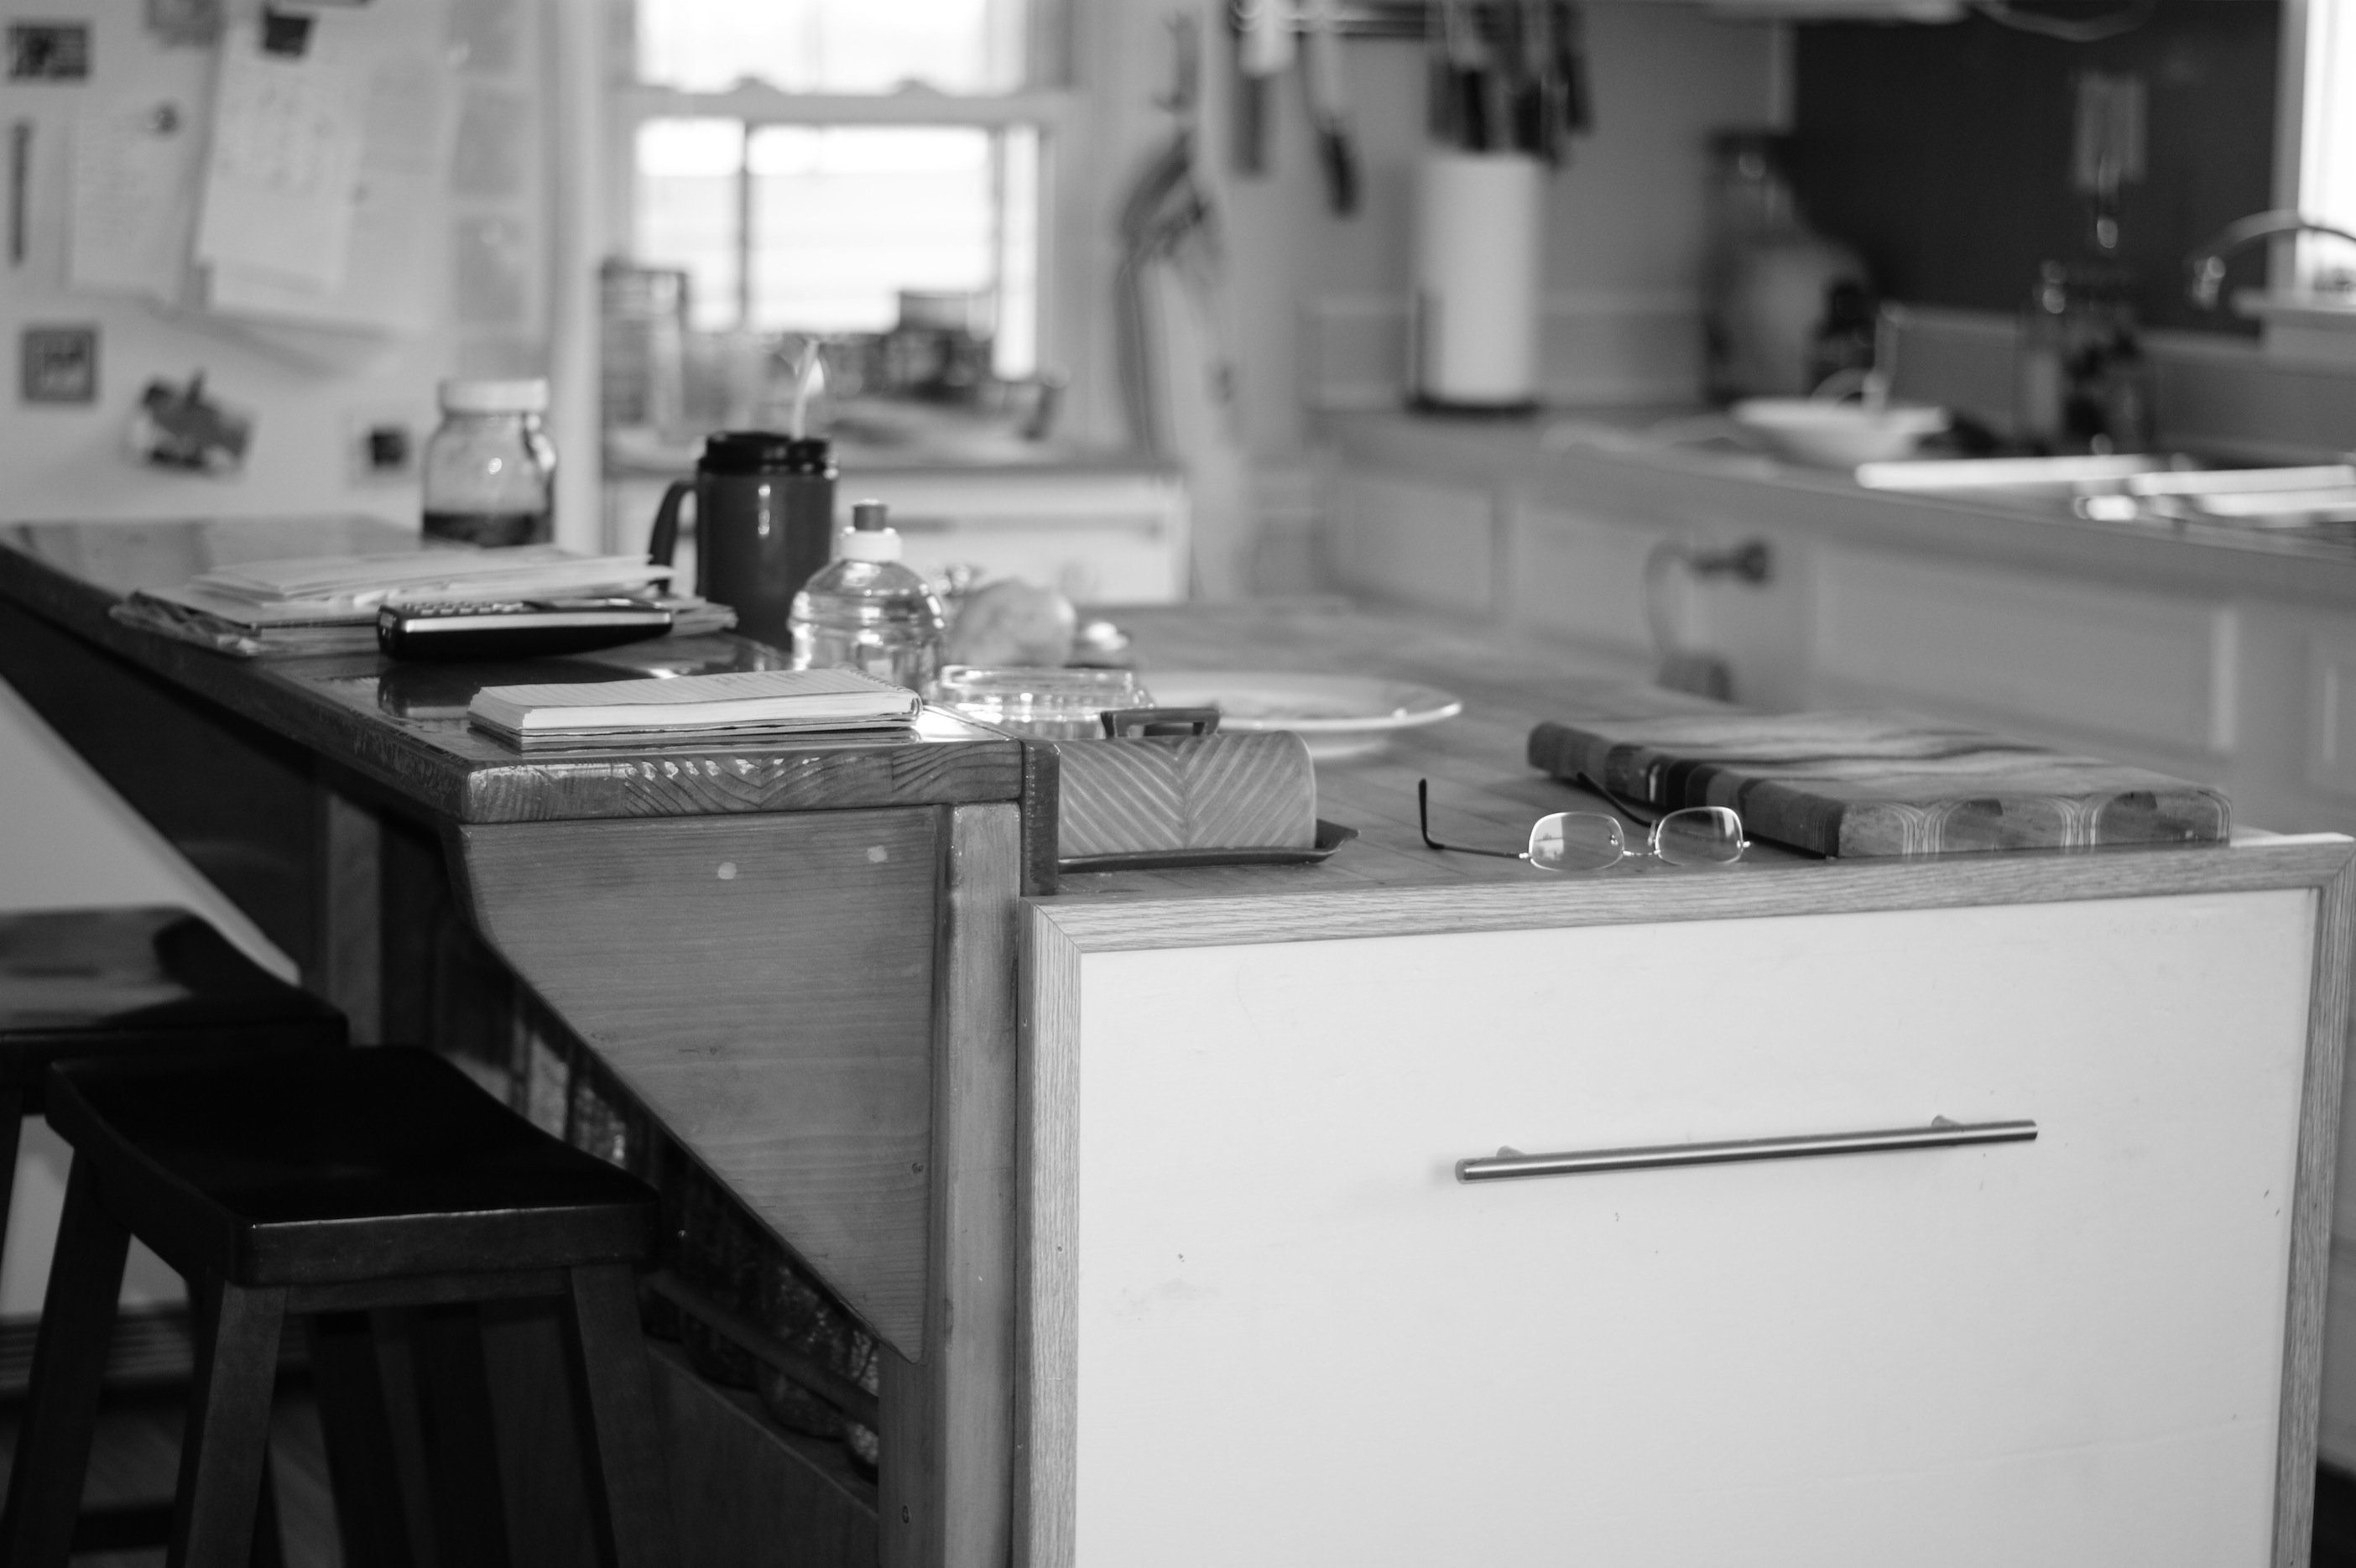 kitchen in b+w